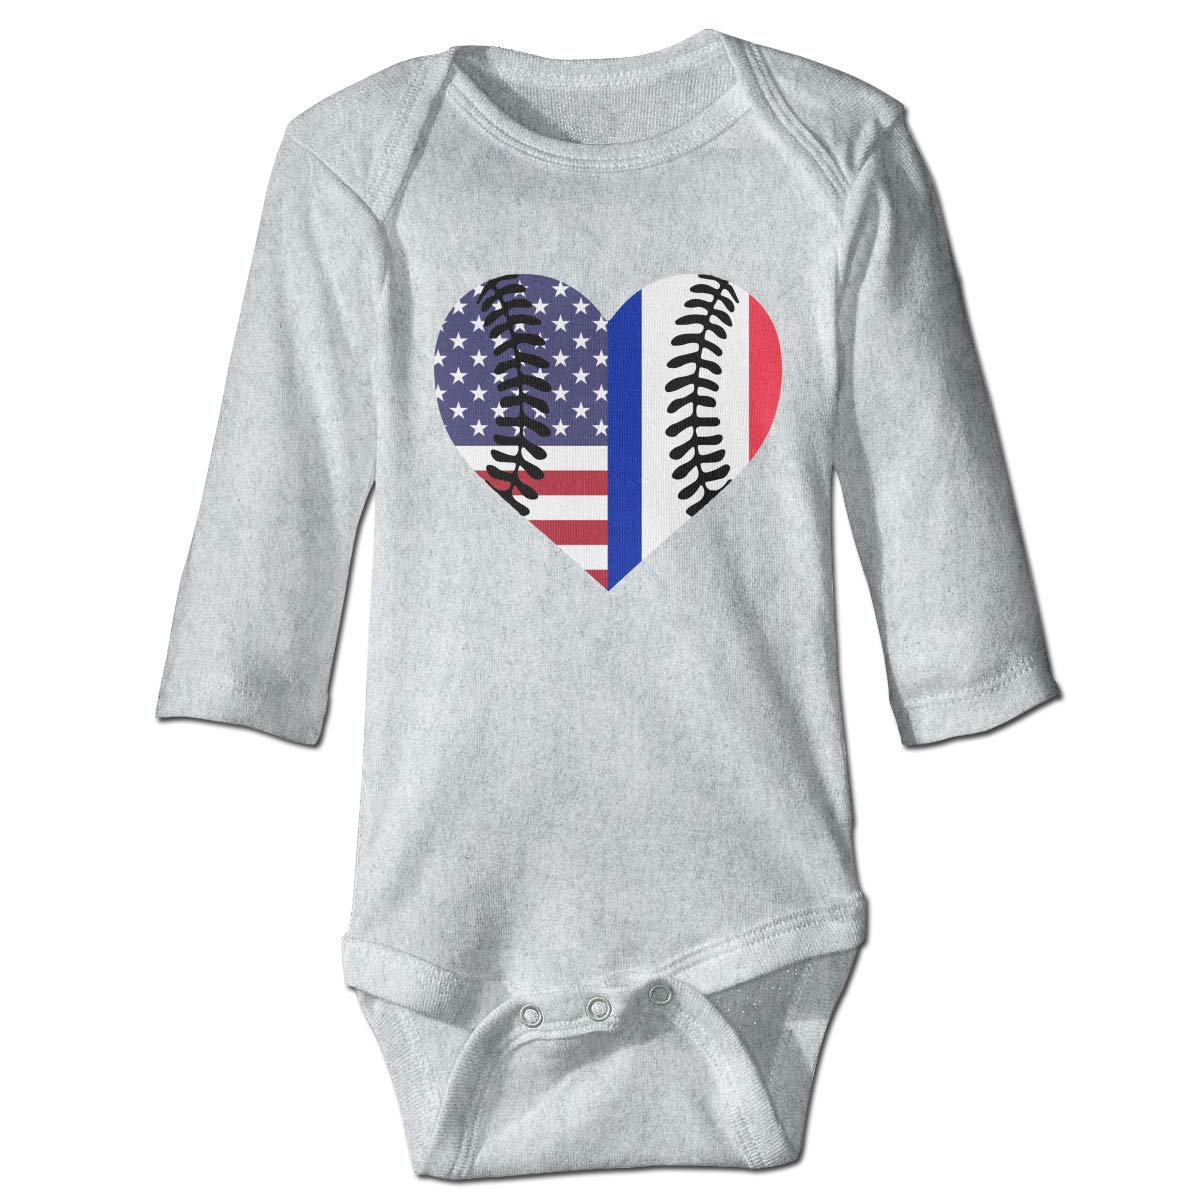 A14UBP Infant Babys Long Sleeve Romper Bodysuit France USA Flag Half Baseball Unisex Button Playsuit Outfit Clothes